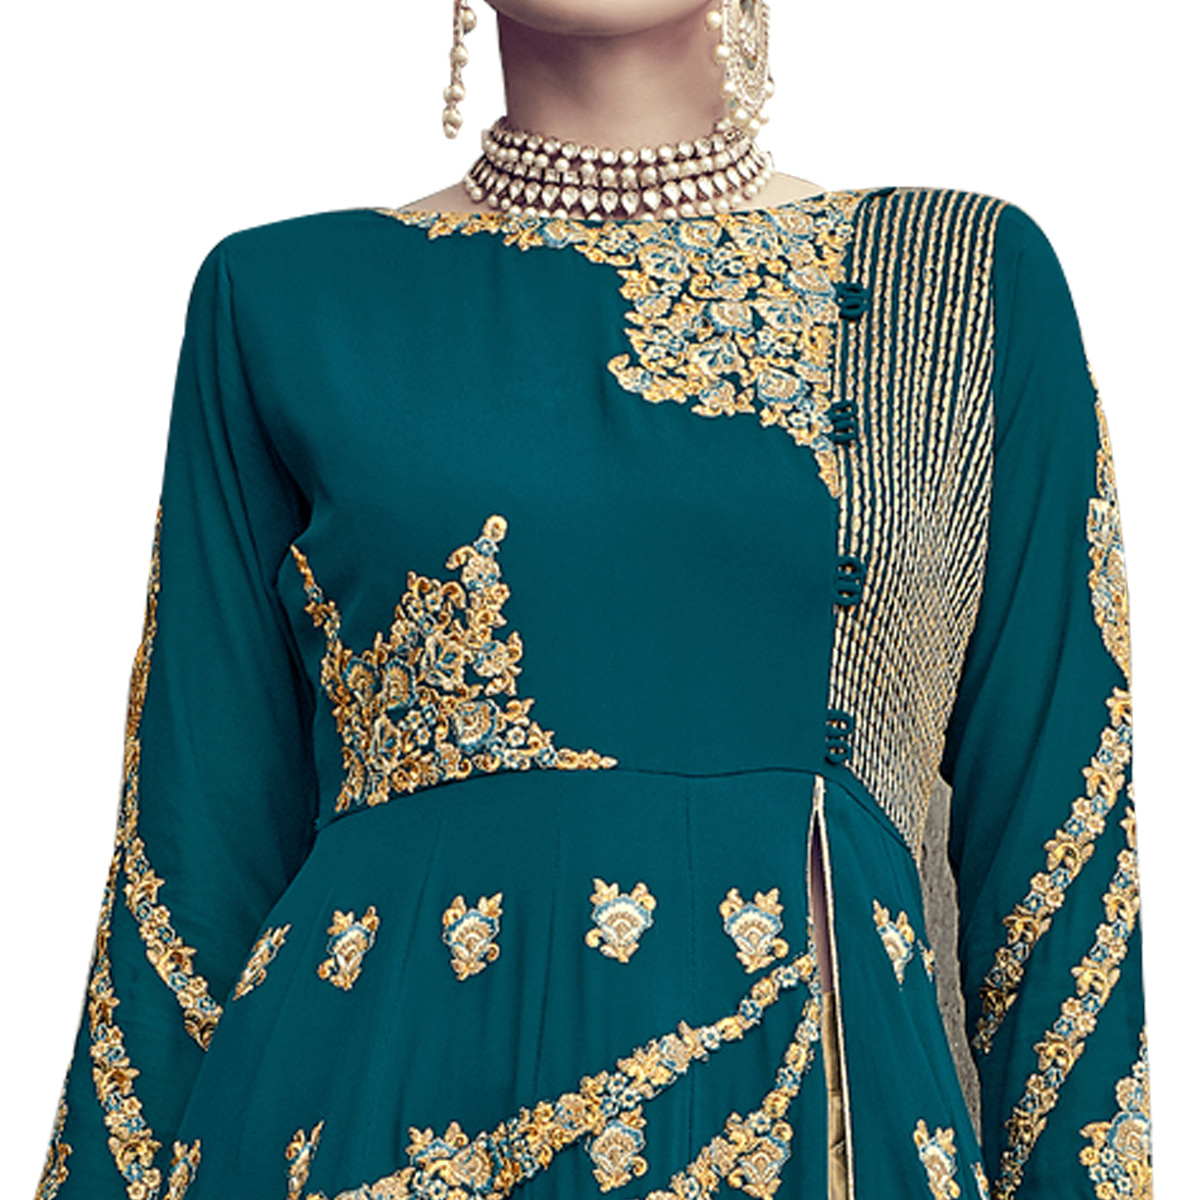 Mesmerising Teal Blue-Beige Colored Partywear Embroidered Georgette Lehenga Kameez